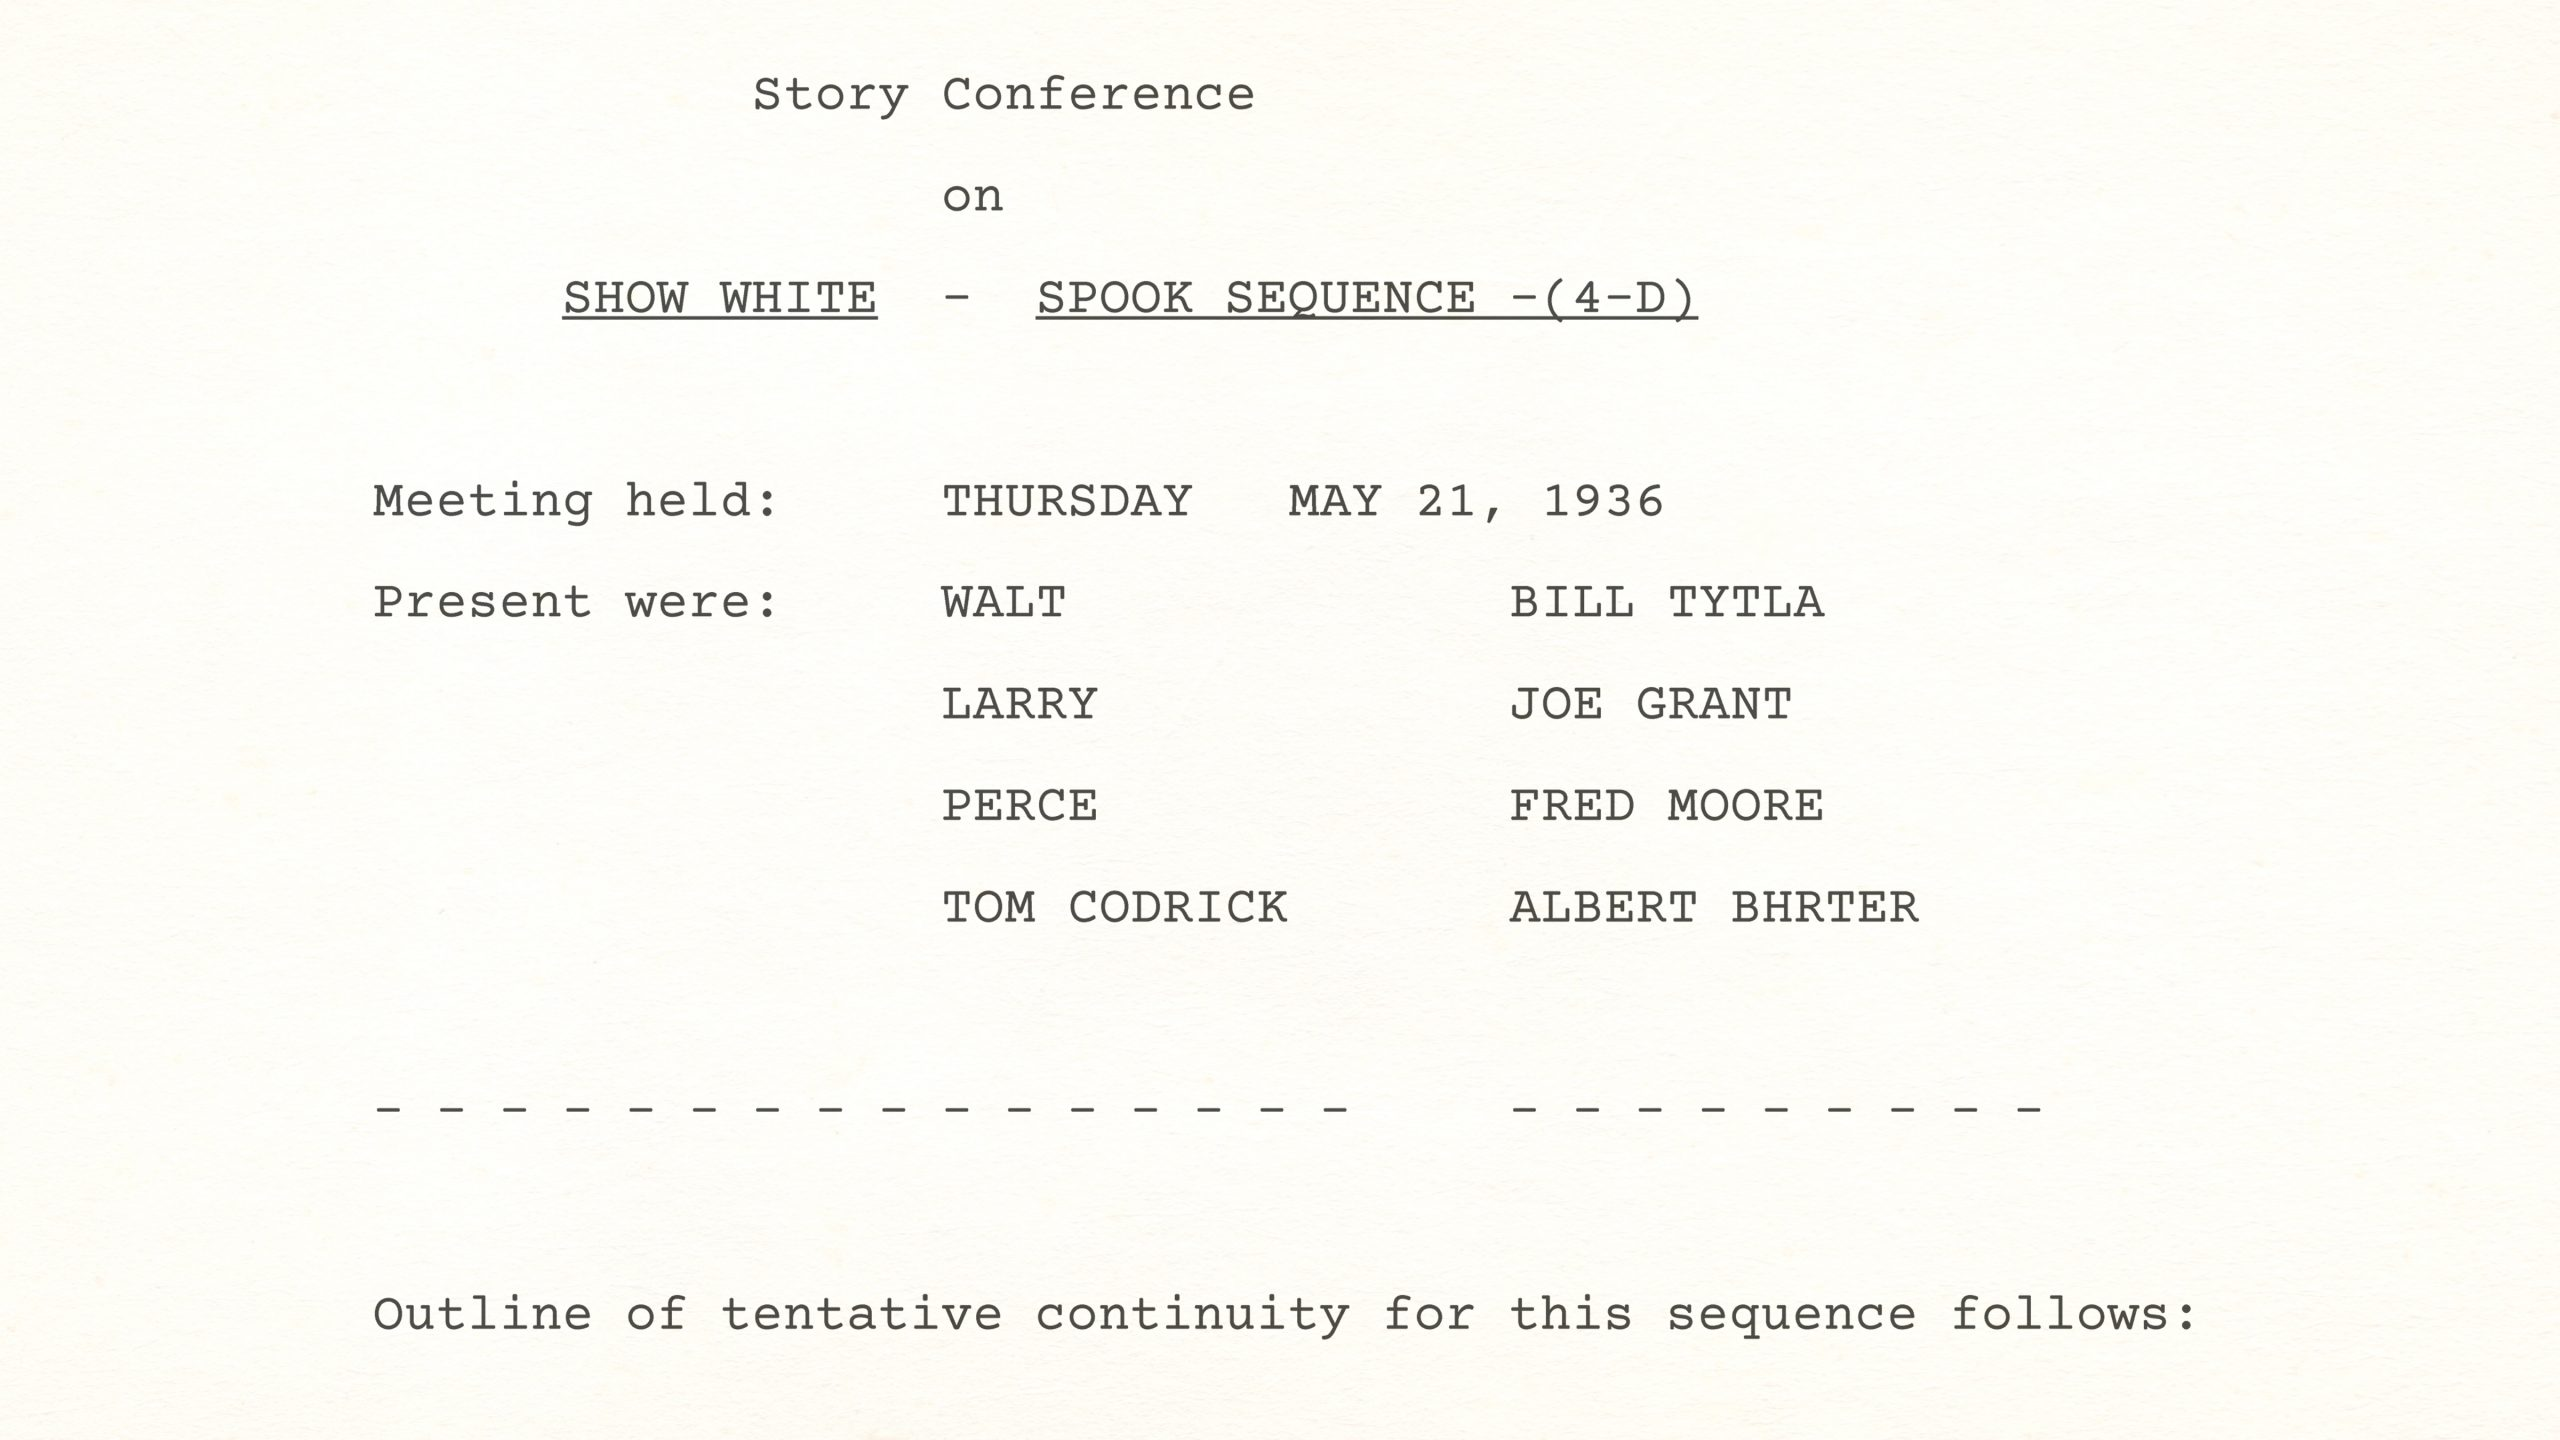 Story Conference on Snow White's SPOOK SEQUENCE, May 21st, 1936